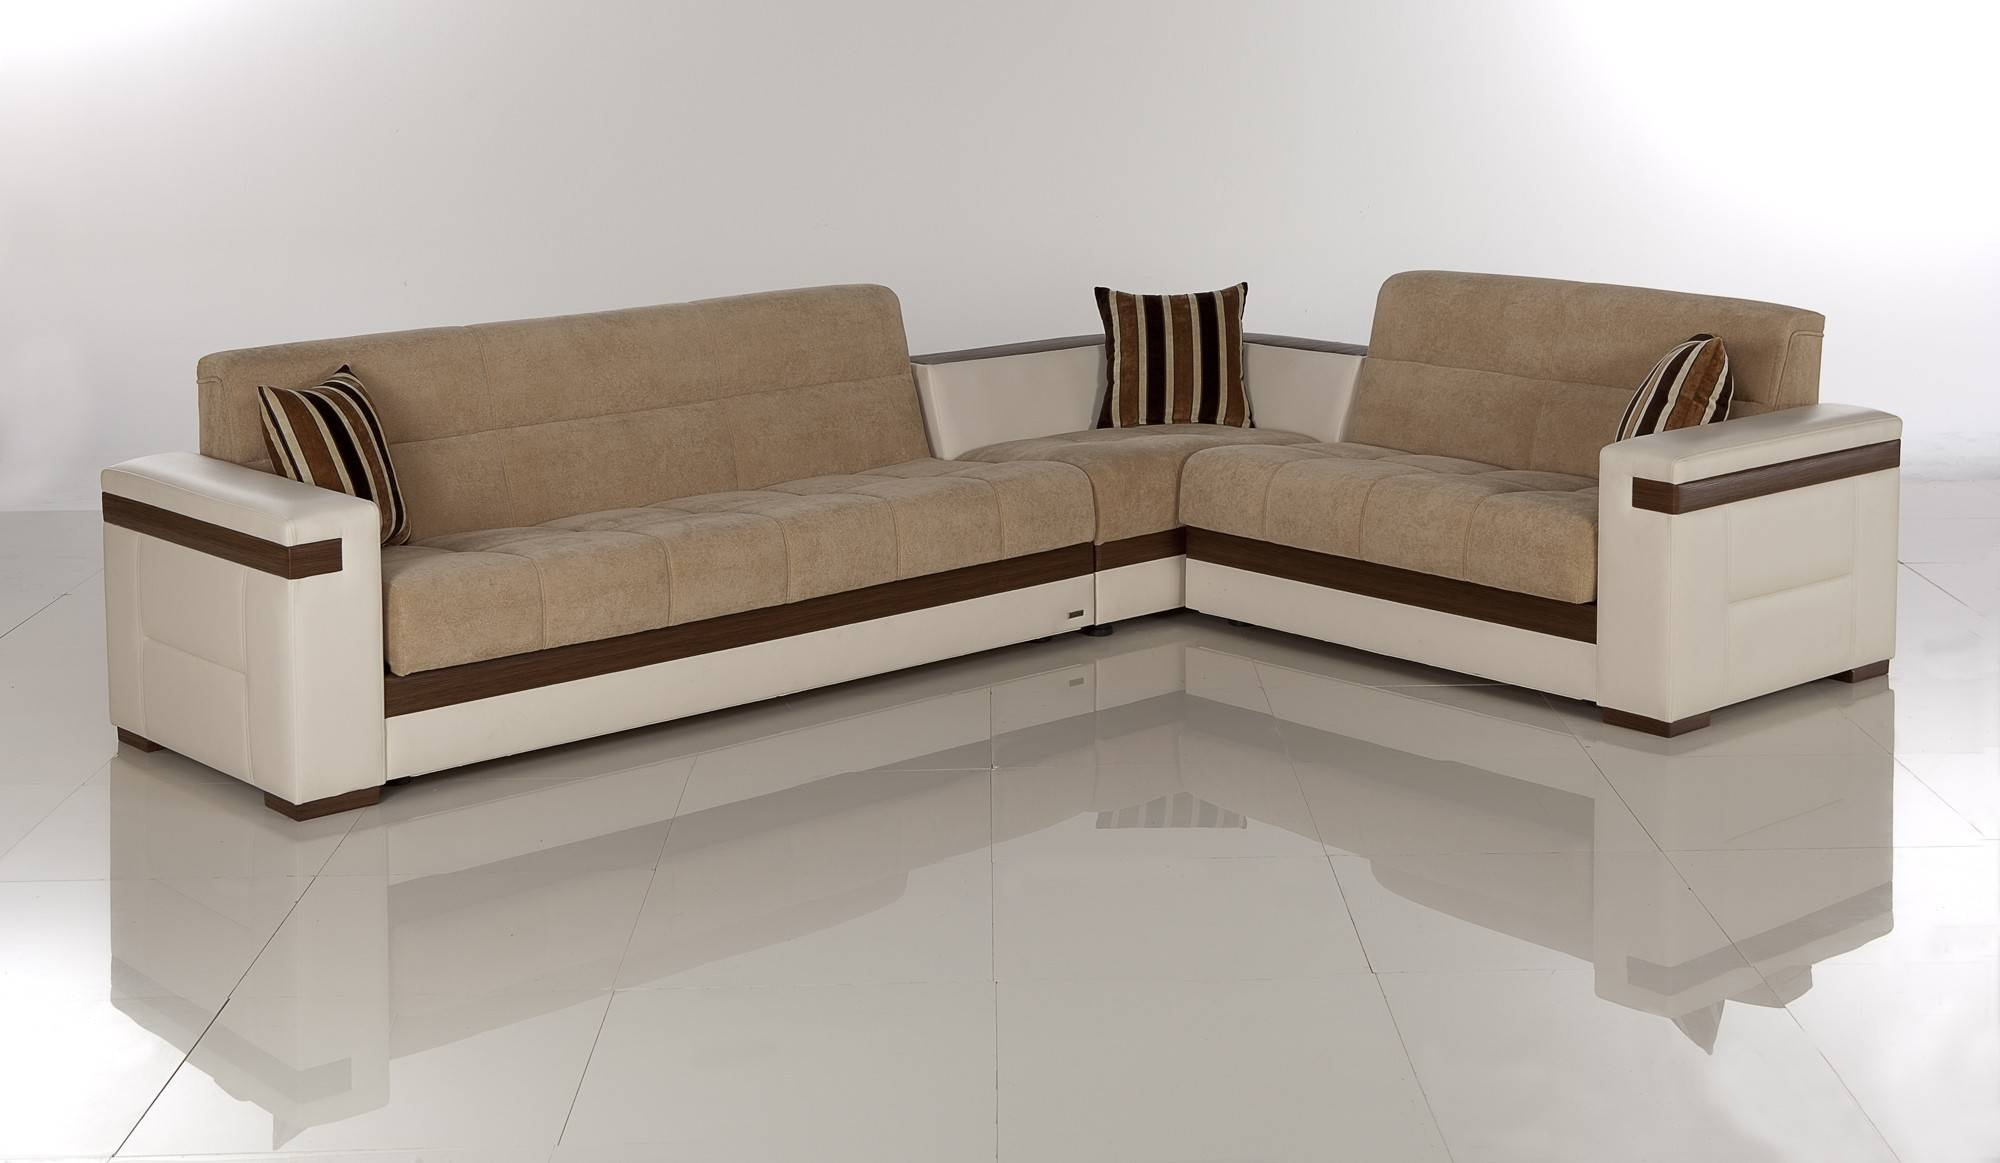 Furniture: Wondrous Alluring Sectional With Sleeper For Home with regard to Corner Sleeper Sofas (Image 11 of 15)